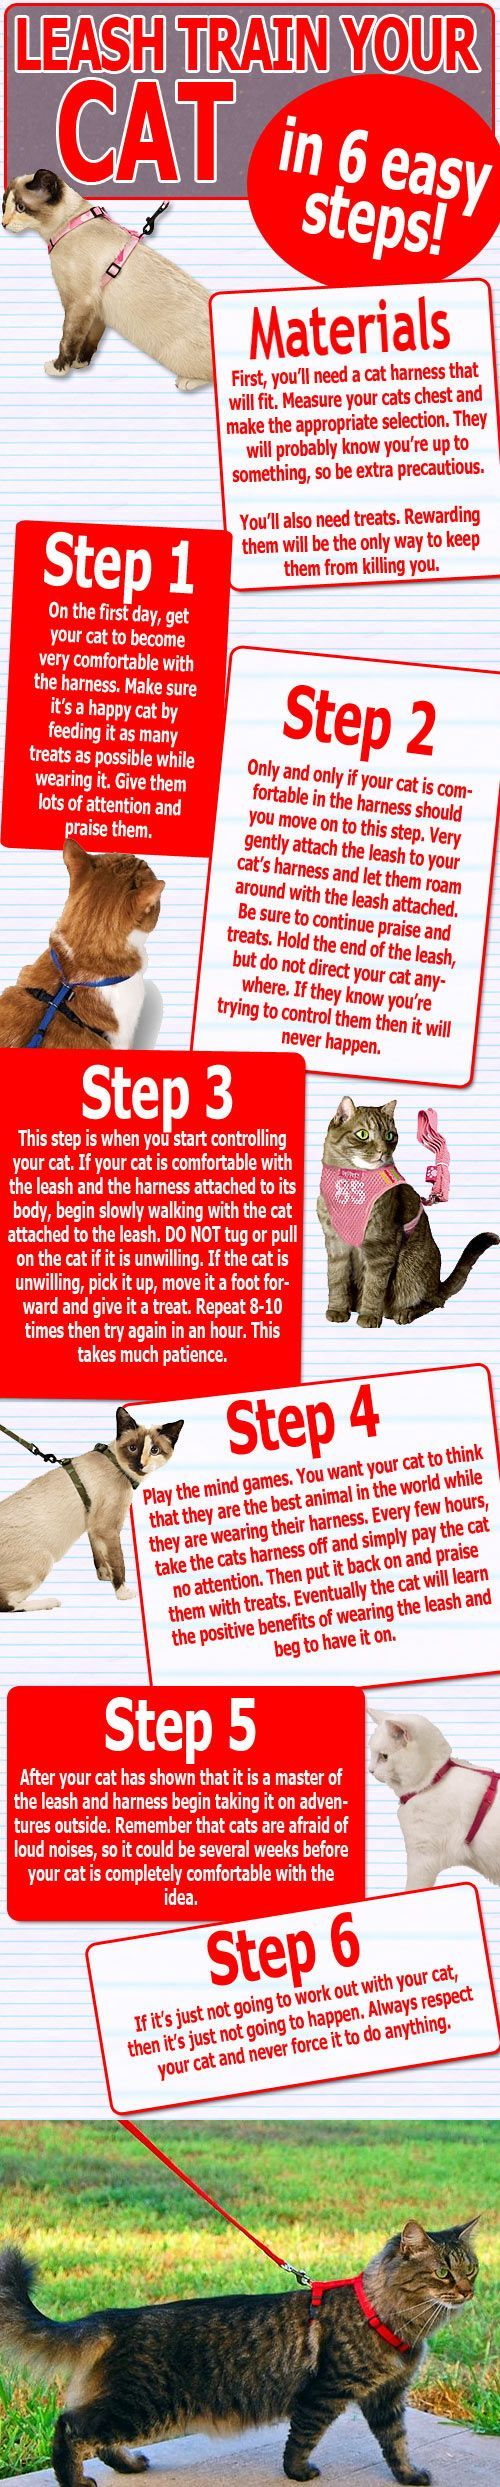 If you've ever wanted to teach your cat how to walk on a leash, this helpful infographic shows you in 6 easy steps.